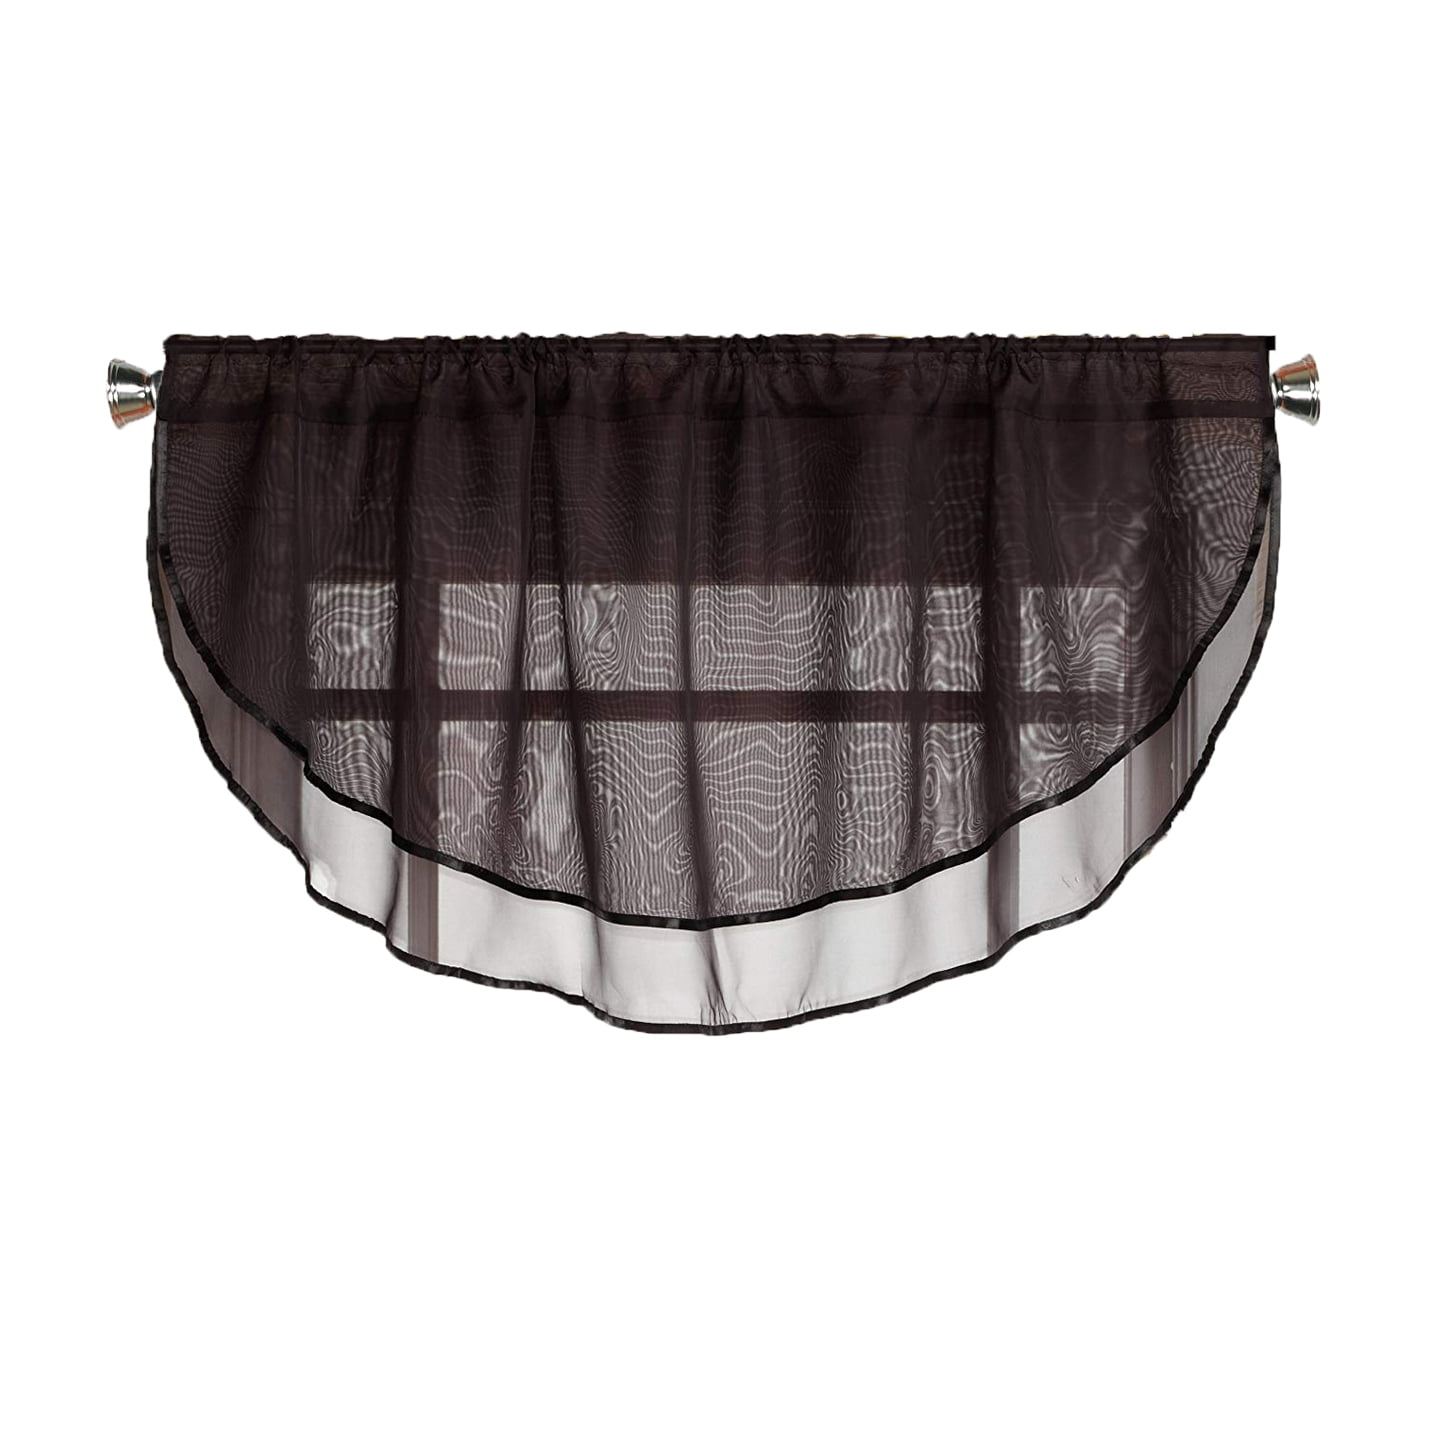 Sheer Voile Valance Curtain For Windows Size 54 In X 24 In Scalloped With Ribbon For Kitchens Living Room Dining Room Bathroom Bay Windows Basement Laundry Room Black Walmart Com Walmart Com